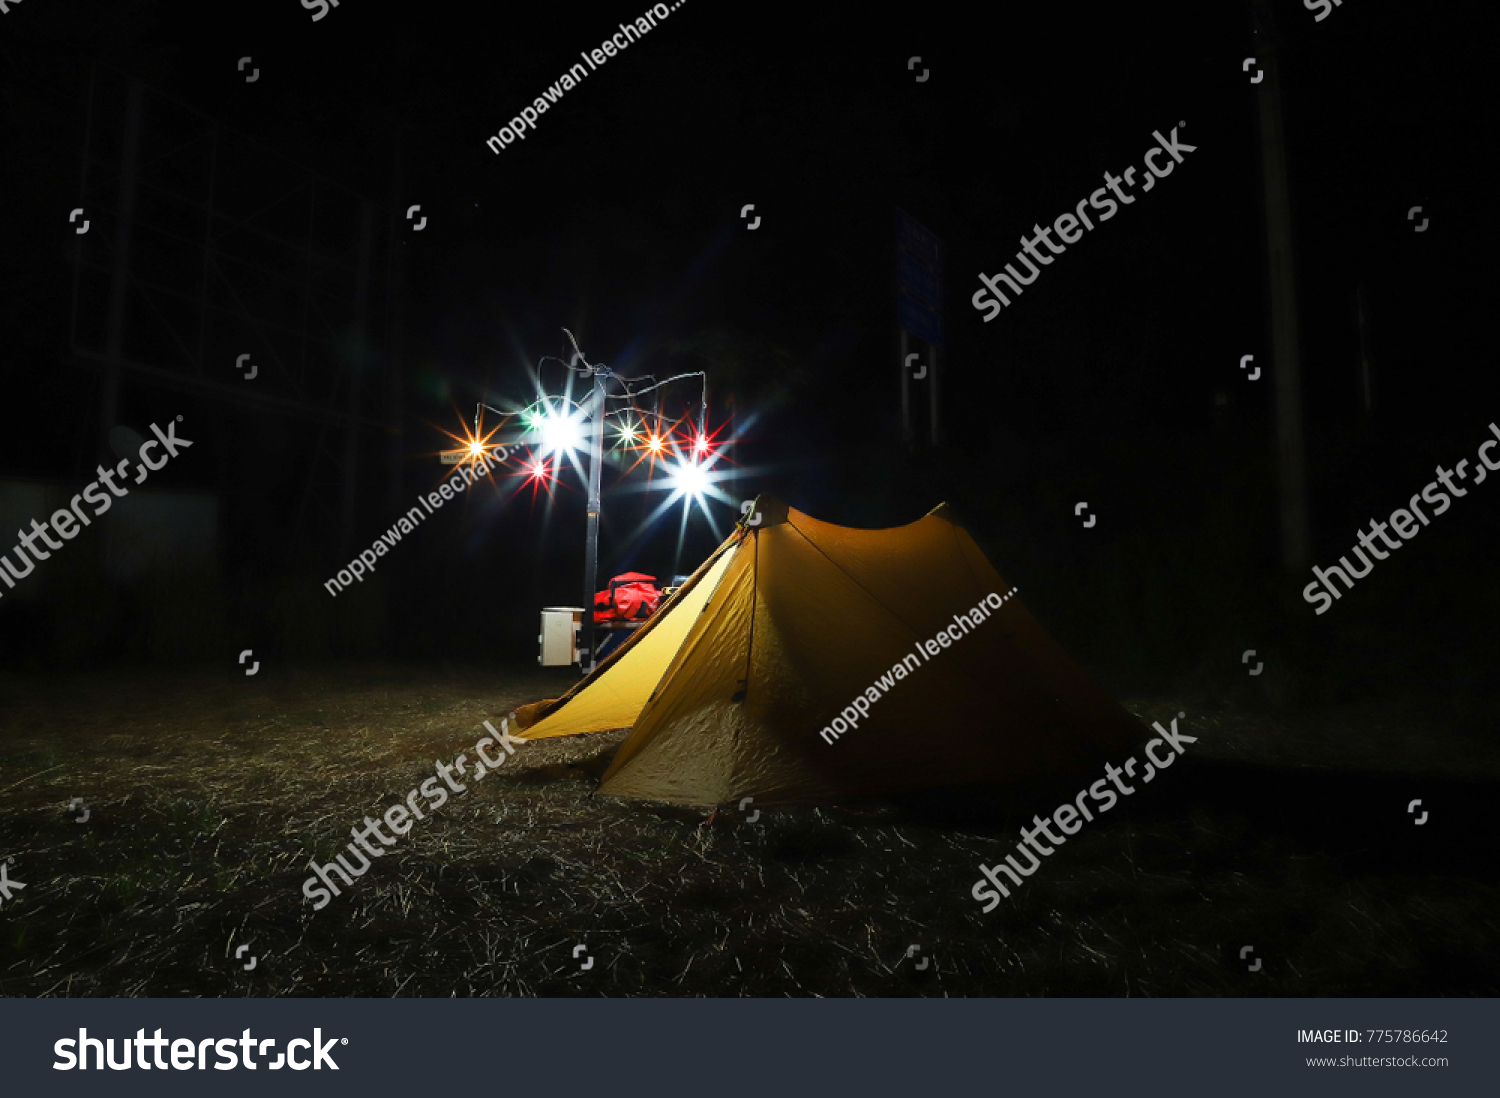 Bright yellow tent in the dark with starlight and blue skies. & Bright Yellow Tent Dark Starlight Blue Stock Photo (Edit Now ...